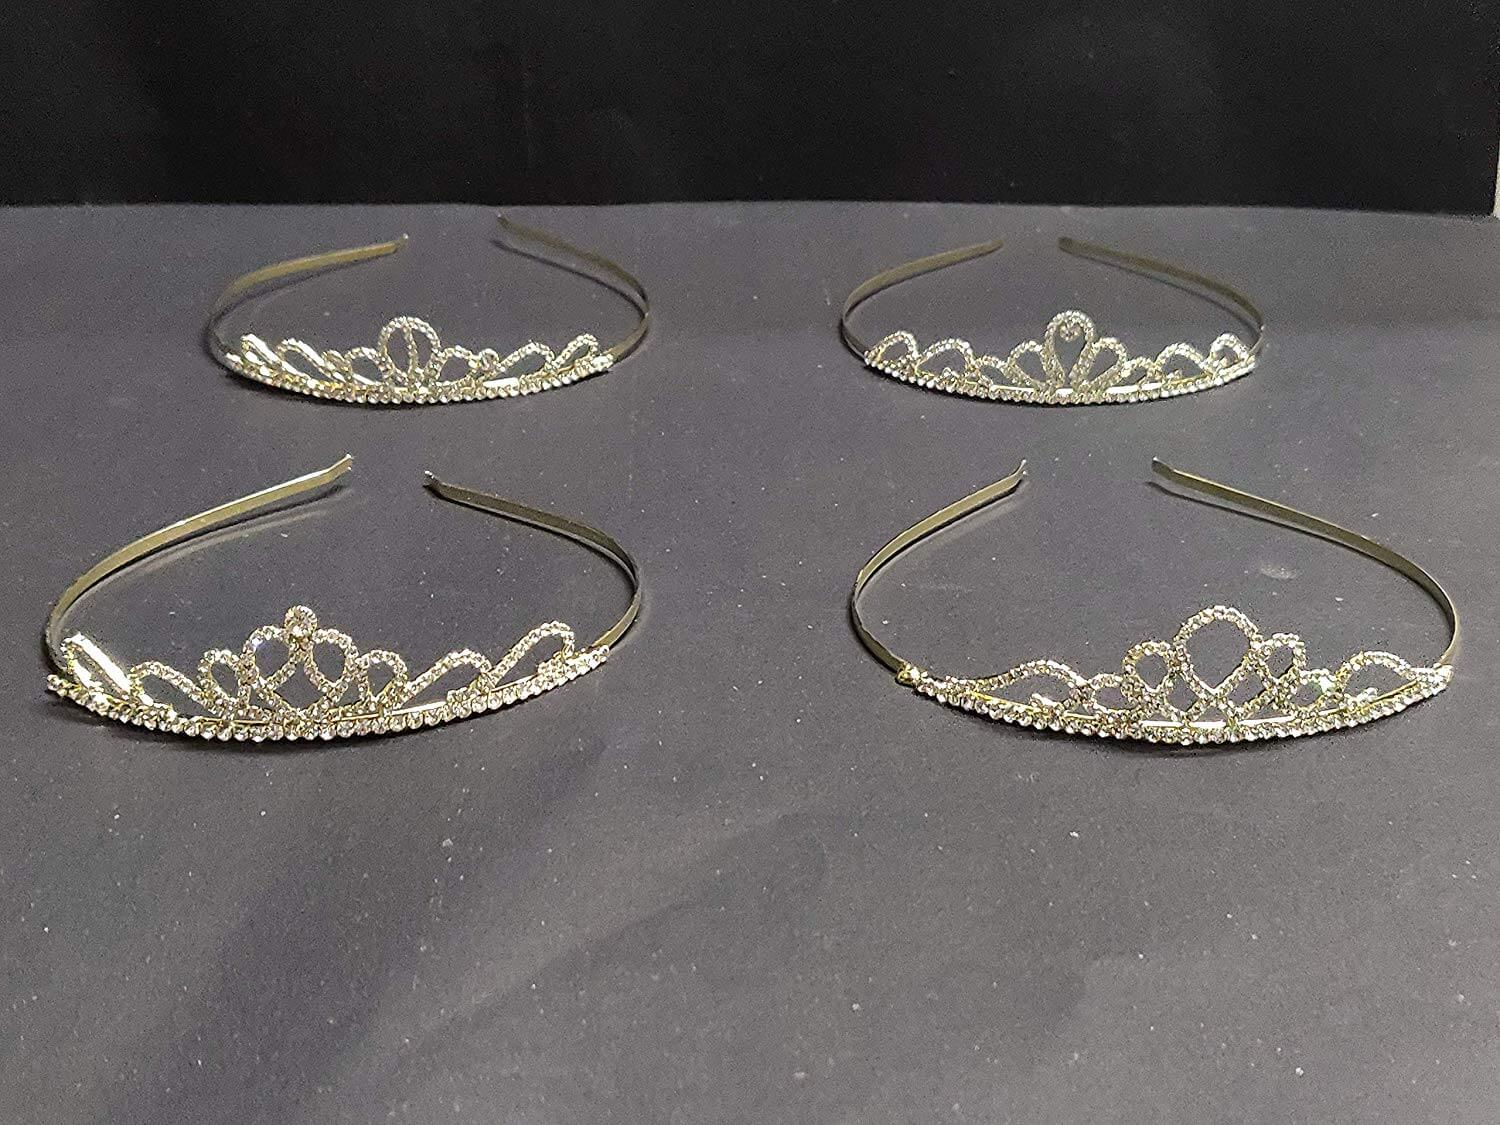 Golden Wonderful Studded Shimmering Stone Classy Trendy Crown- 1 pc